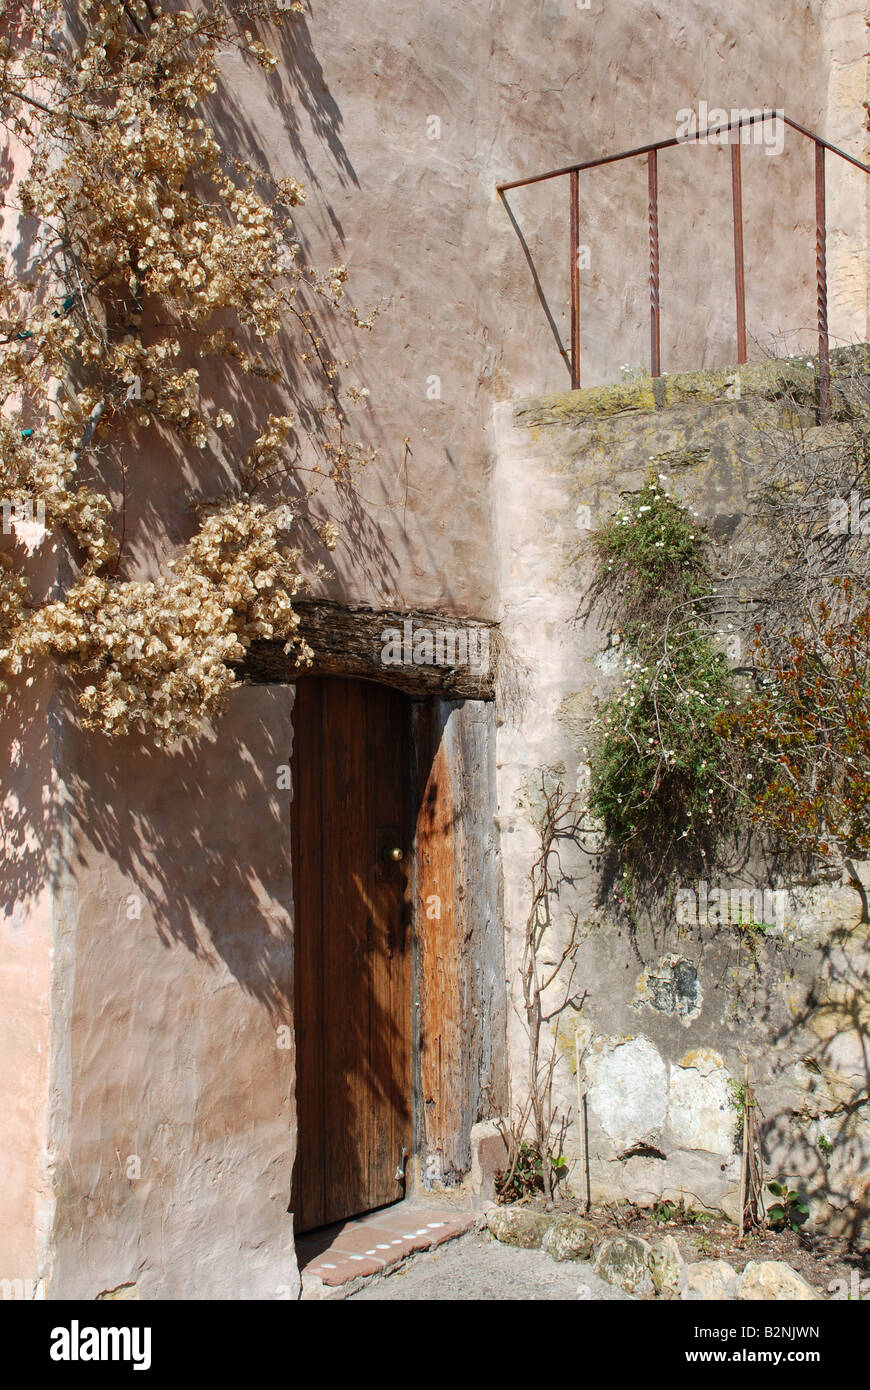 California mission style architecture - Spanish Mission Style Architecture Of Basilica With Wooden Doorway And Stone Steps Carmel Mission California